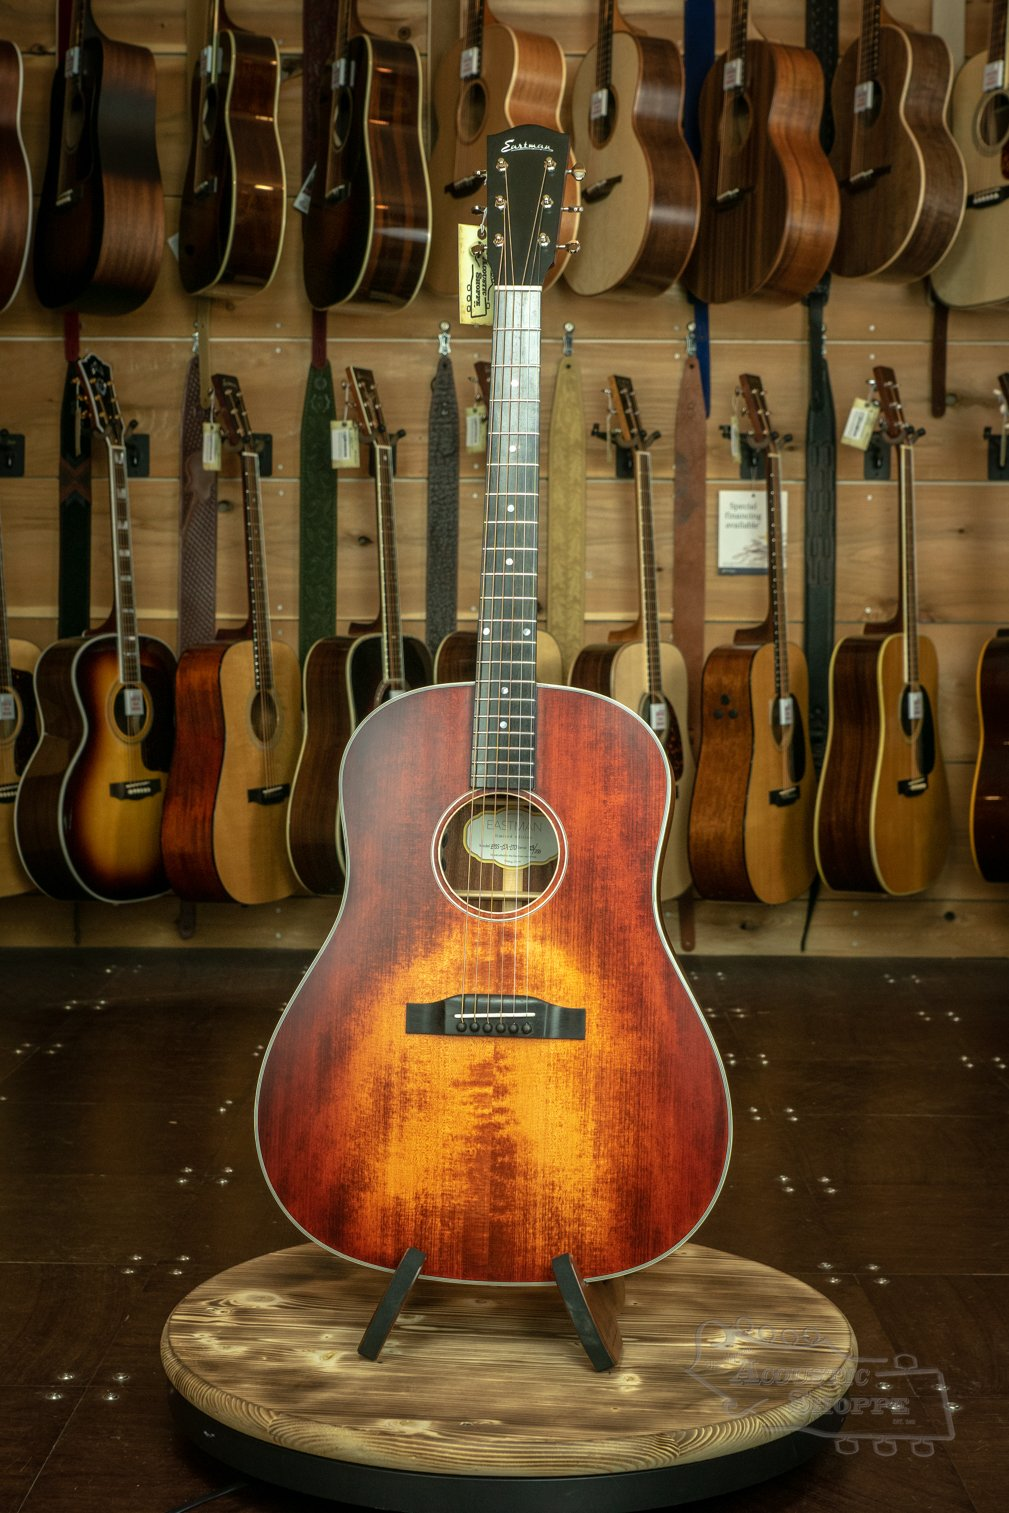 Eastman E1SS-LTD-CLA Slope Shoulder Adirondack Top Limited Edition Dreadnaught Acoustic #23/250